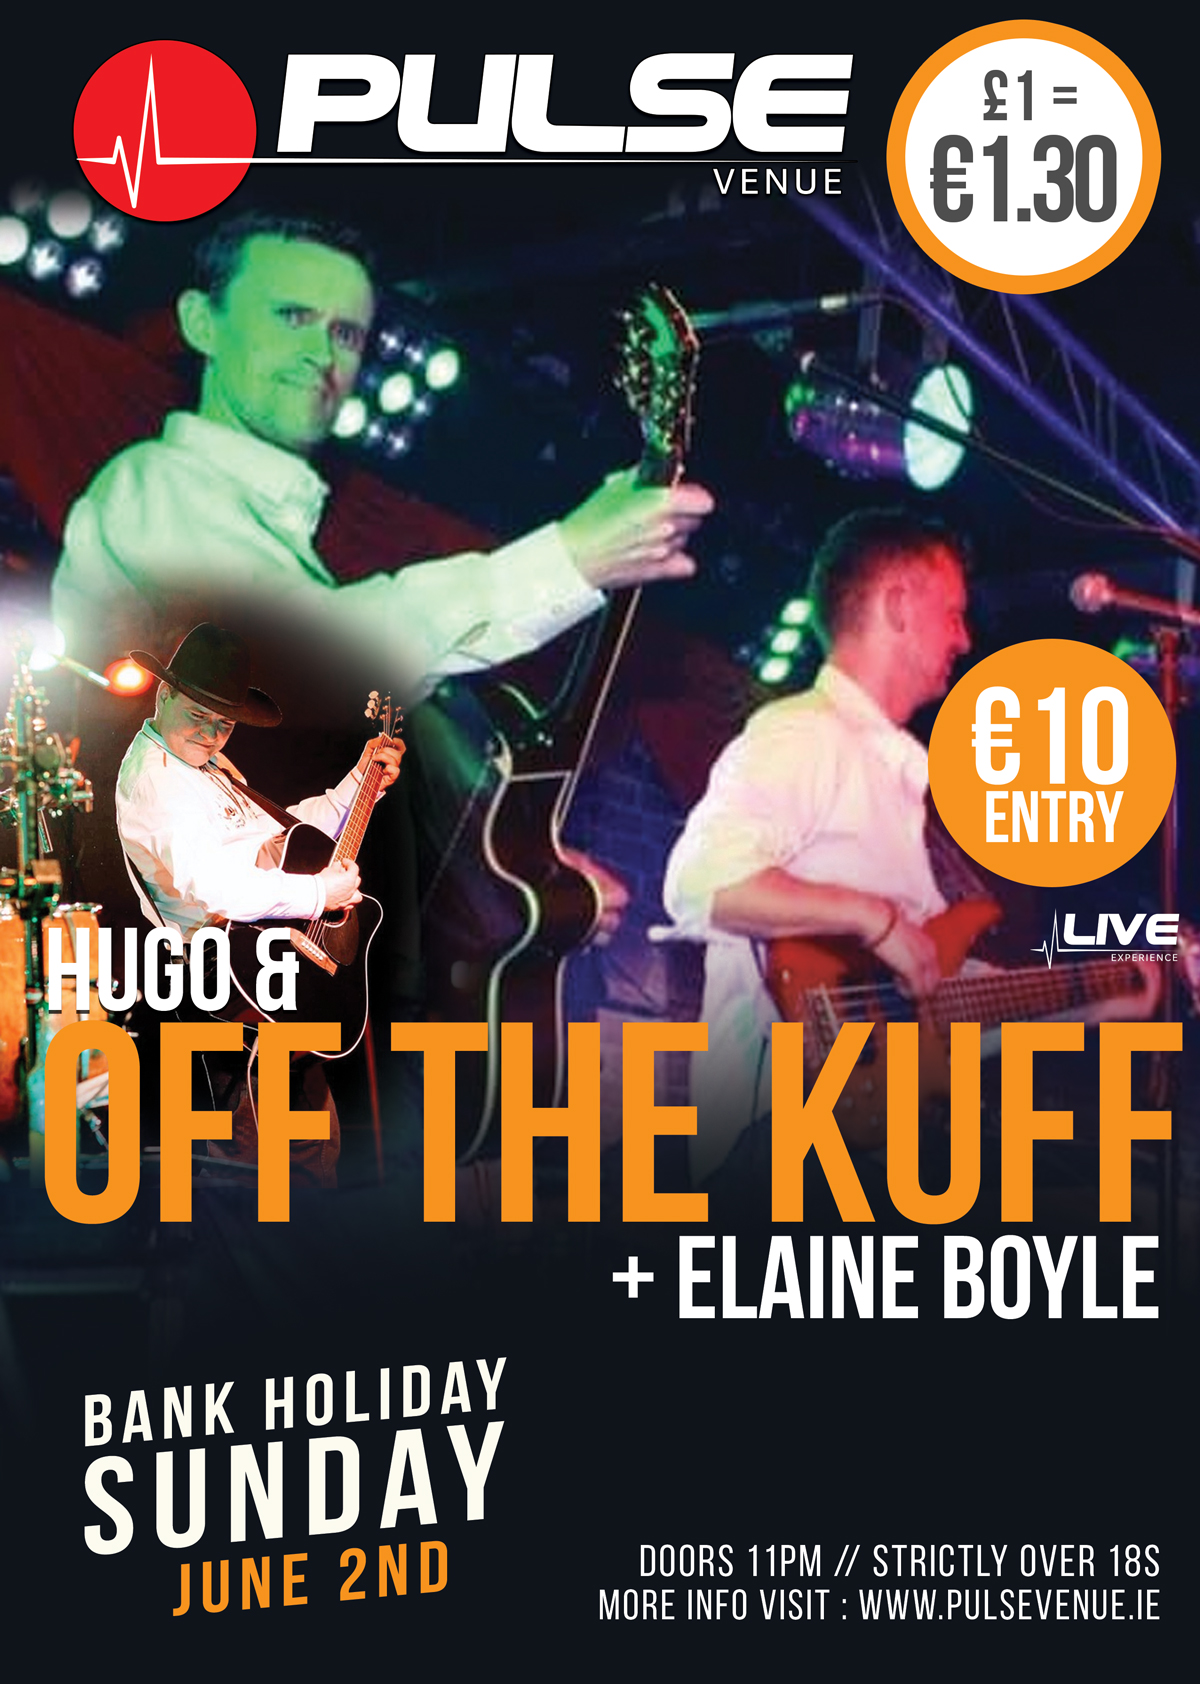 PULSE-VENUE----hugo-and-off-the-kuff-bank-holiday-sunday-june--2-2019.jpg